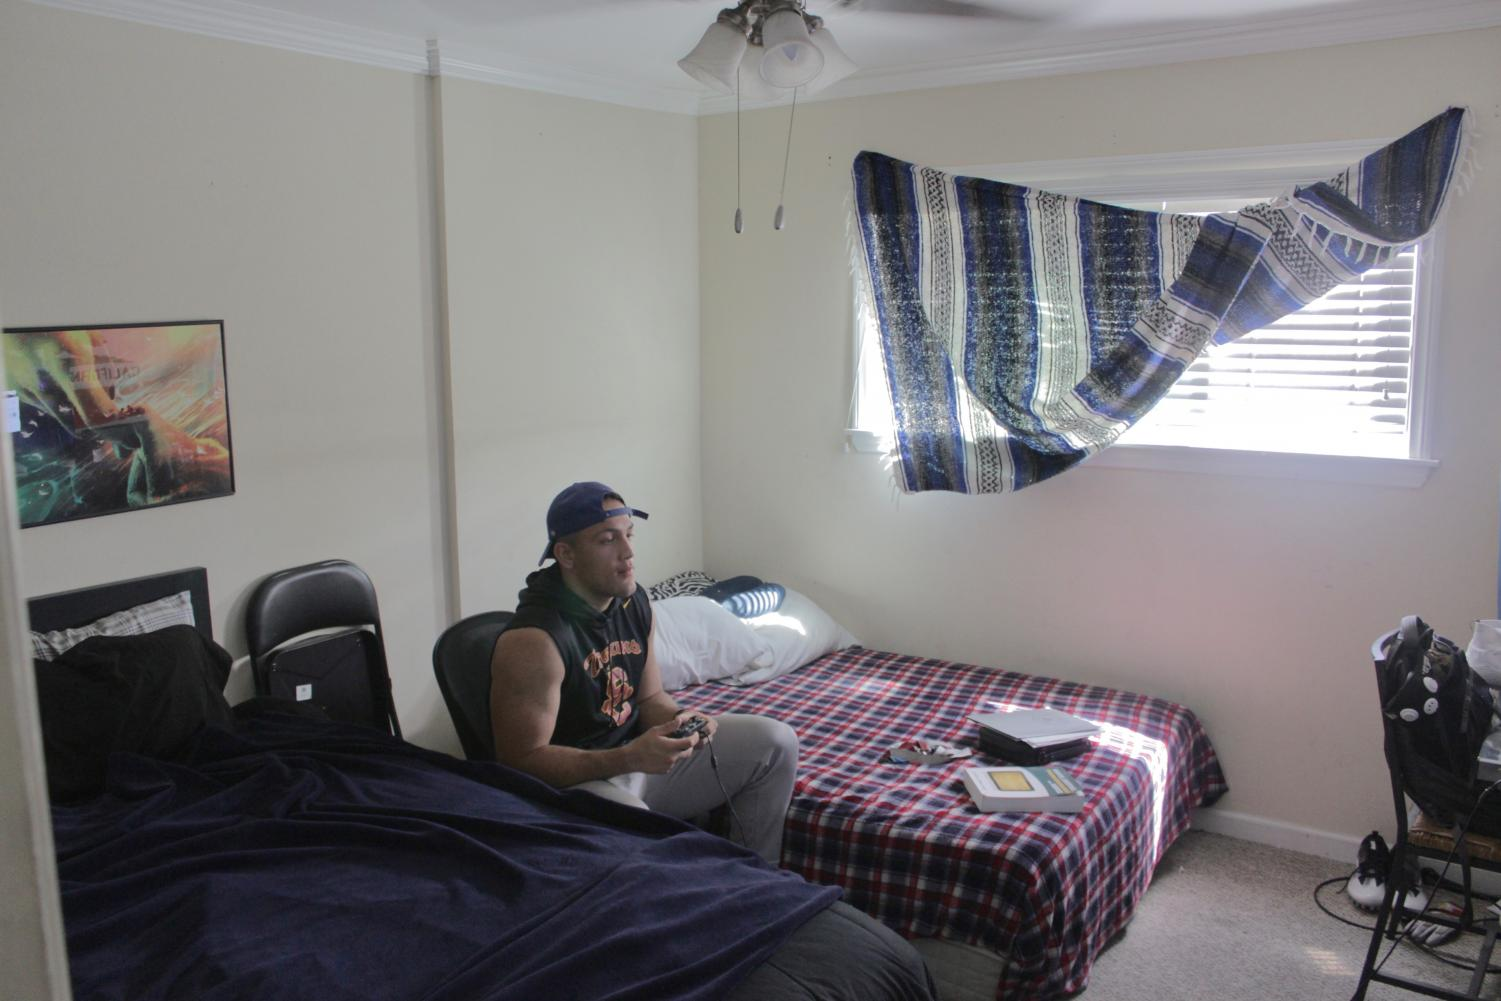 Jaymin Austin, 21 relaxes in his room playing a few rounds of Fortnite. Photo credit: Jeremy Taylor